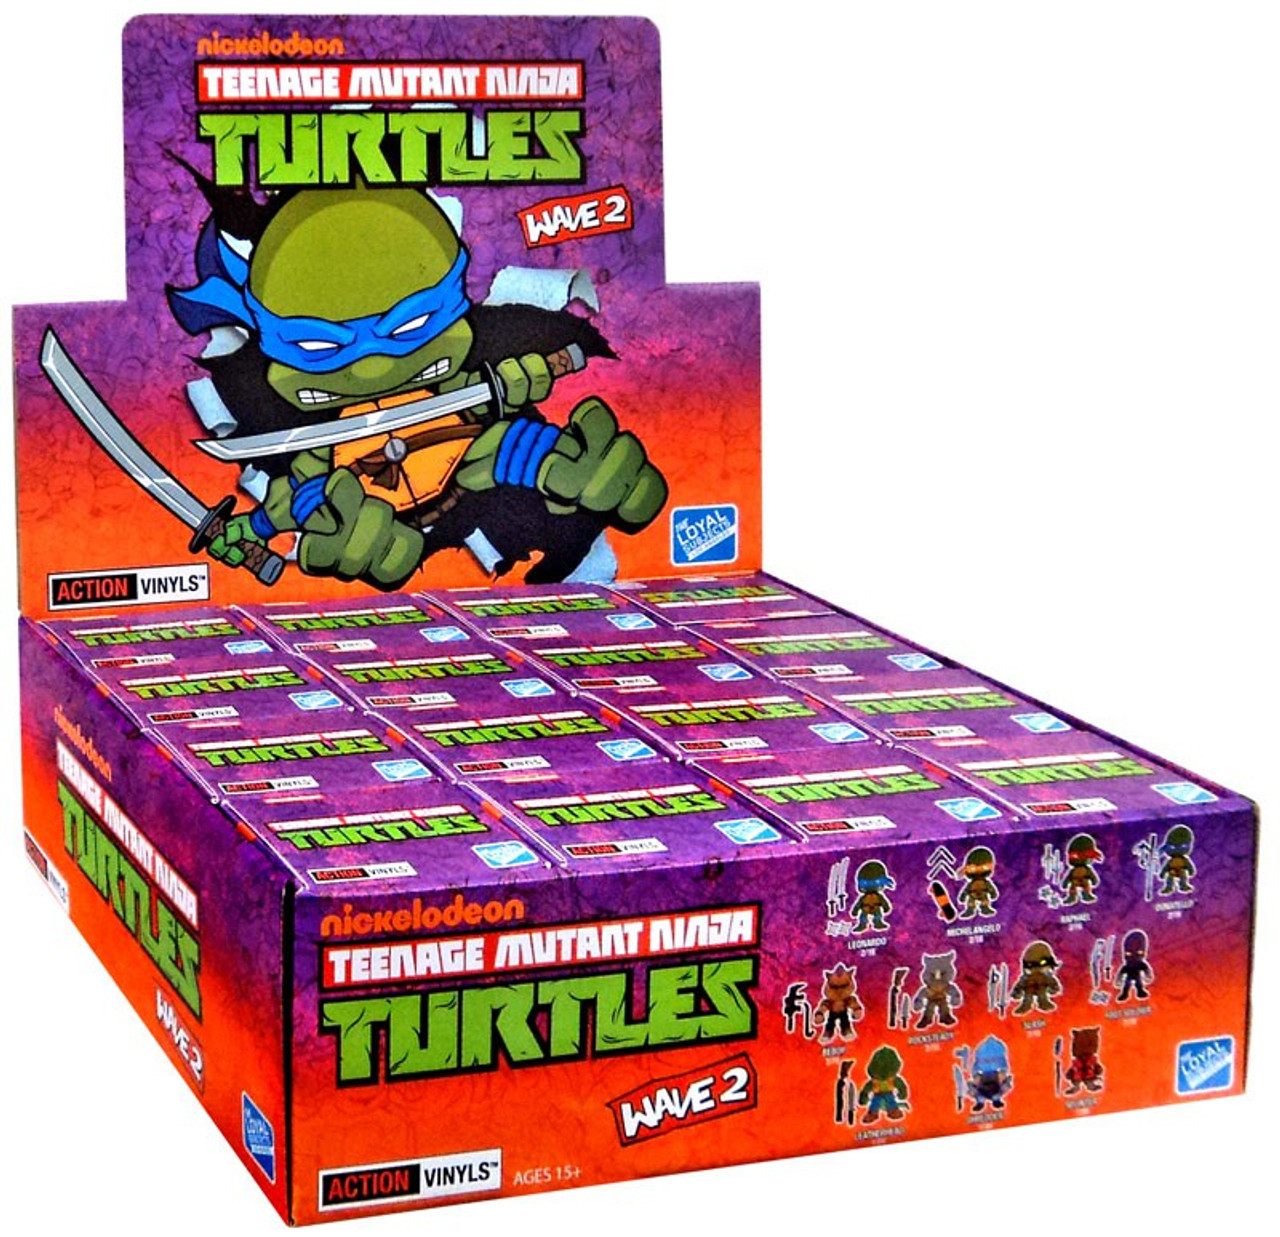 Teenage Mutant Ninja Turtles Blind Box 3 Action Vinyls Series 2 One Random